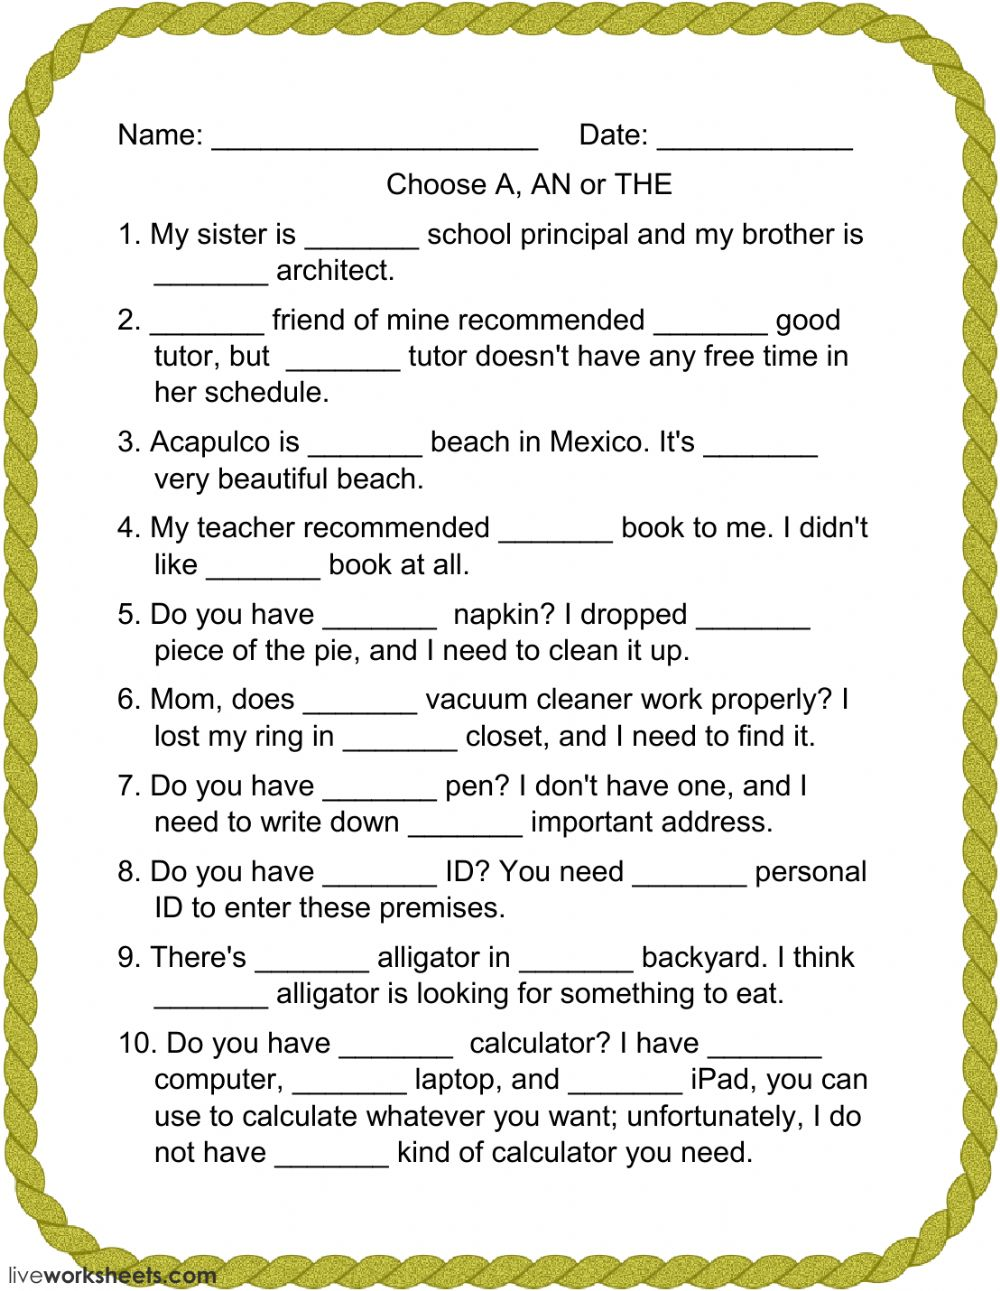 choose a an or the interactive worksheet